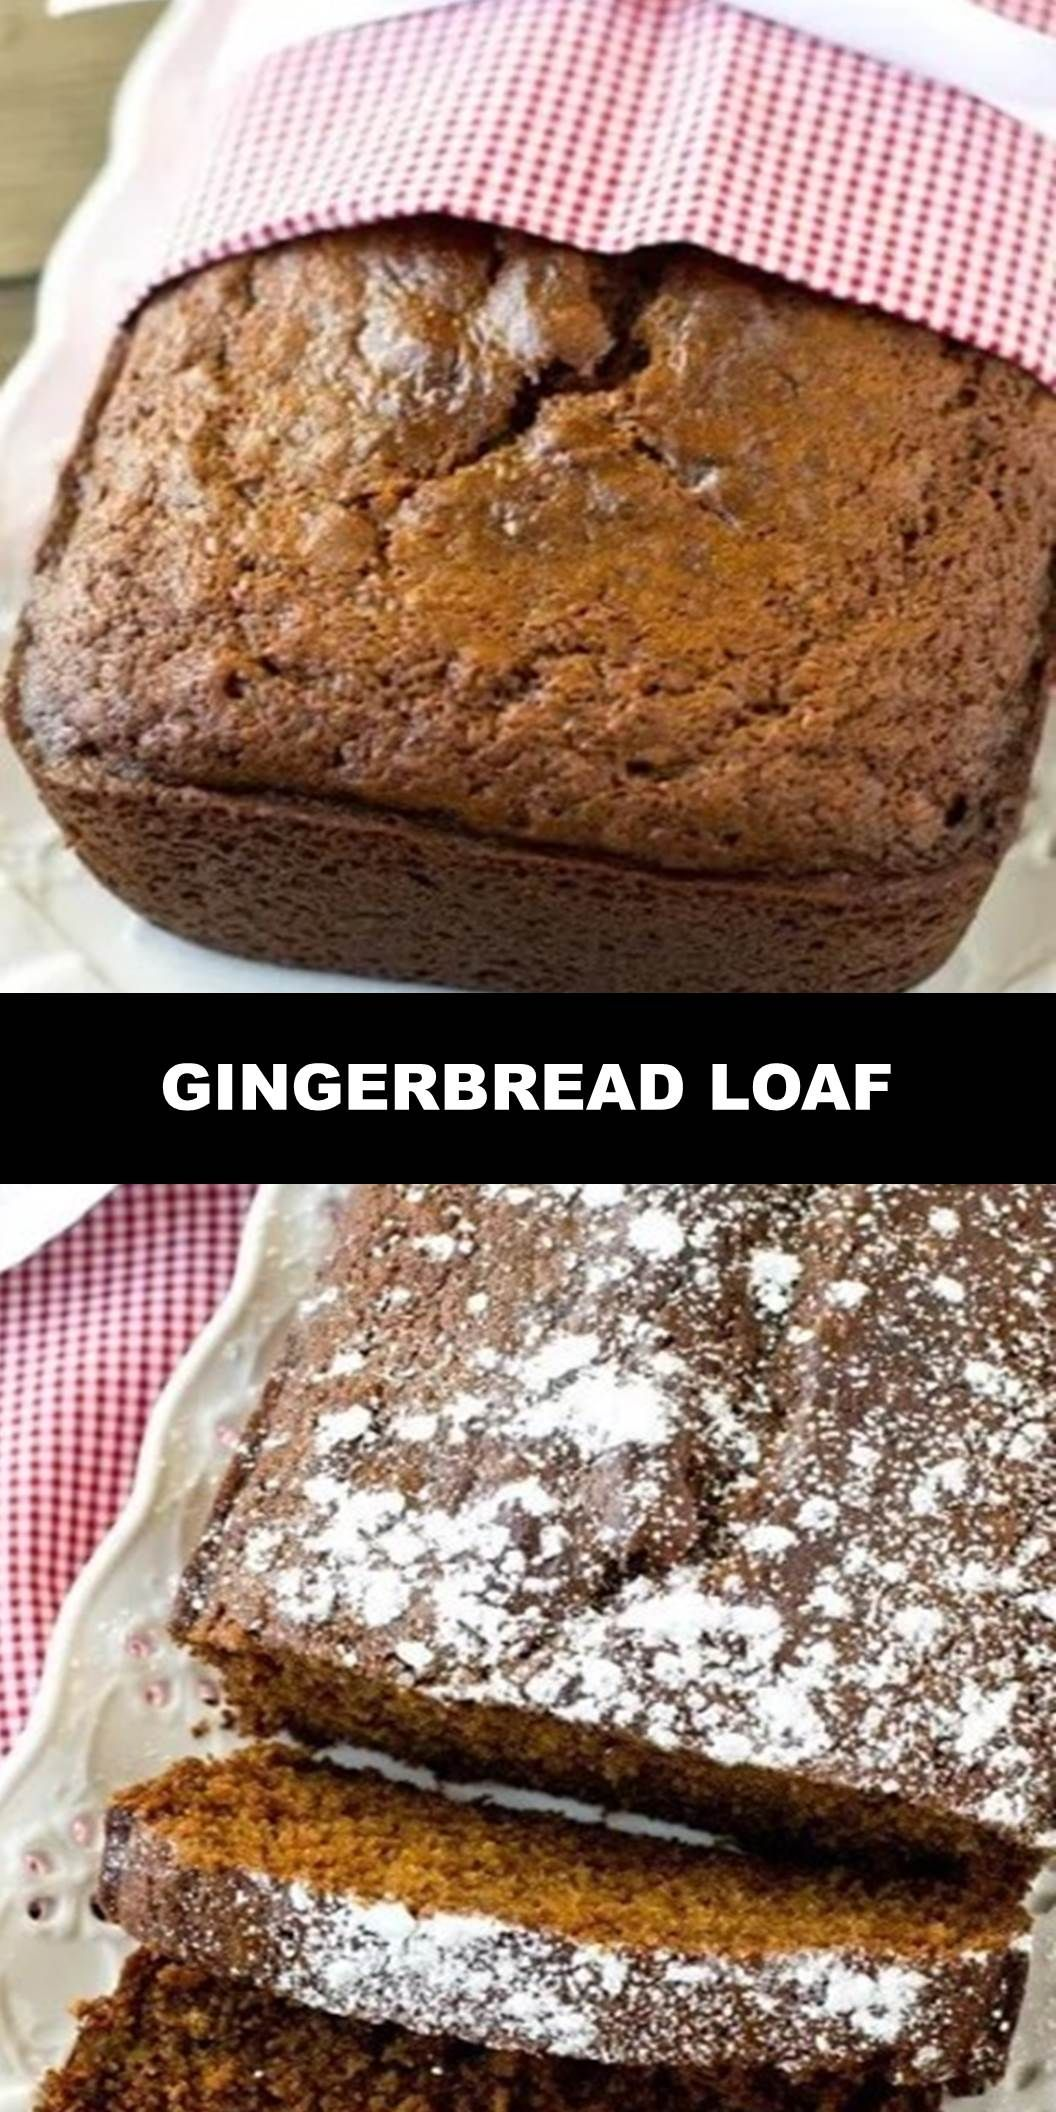 The World's Most Delicious Gingerbread Loaf  Soft, moist, molasses quick bread is perfectly seasoned with ginger and nutmeg. Gingerbread Loaf gives that classic holiday flavor that you love!